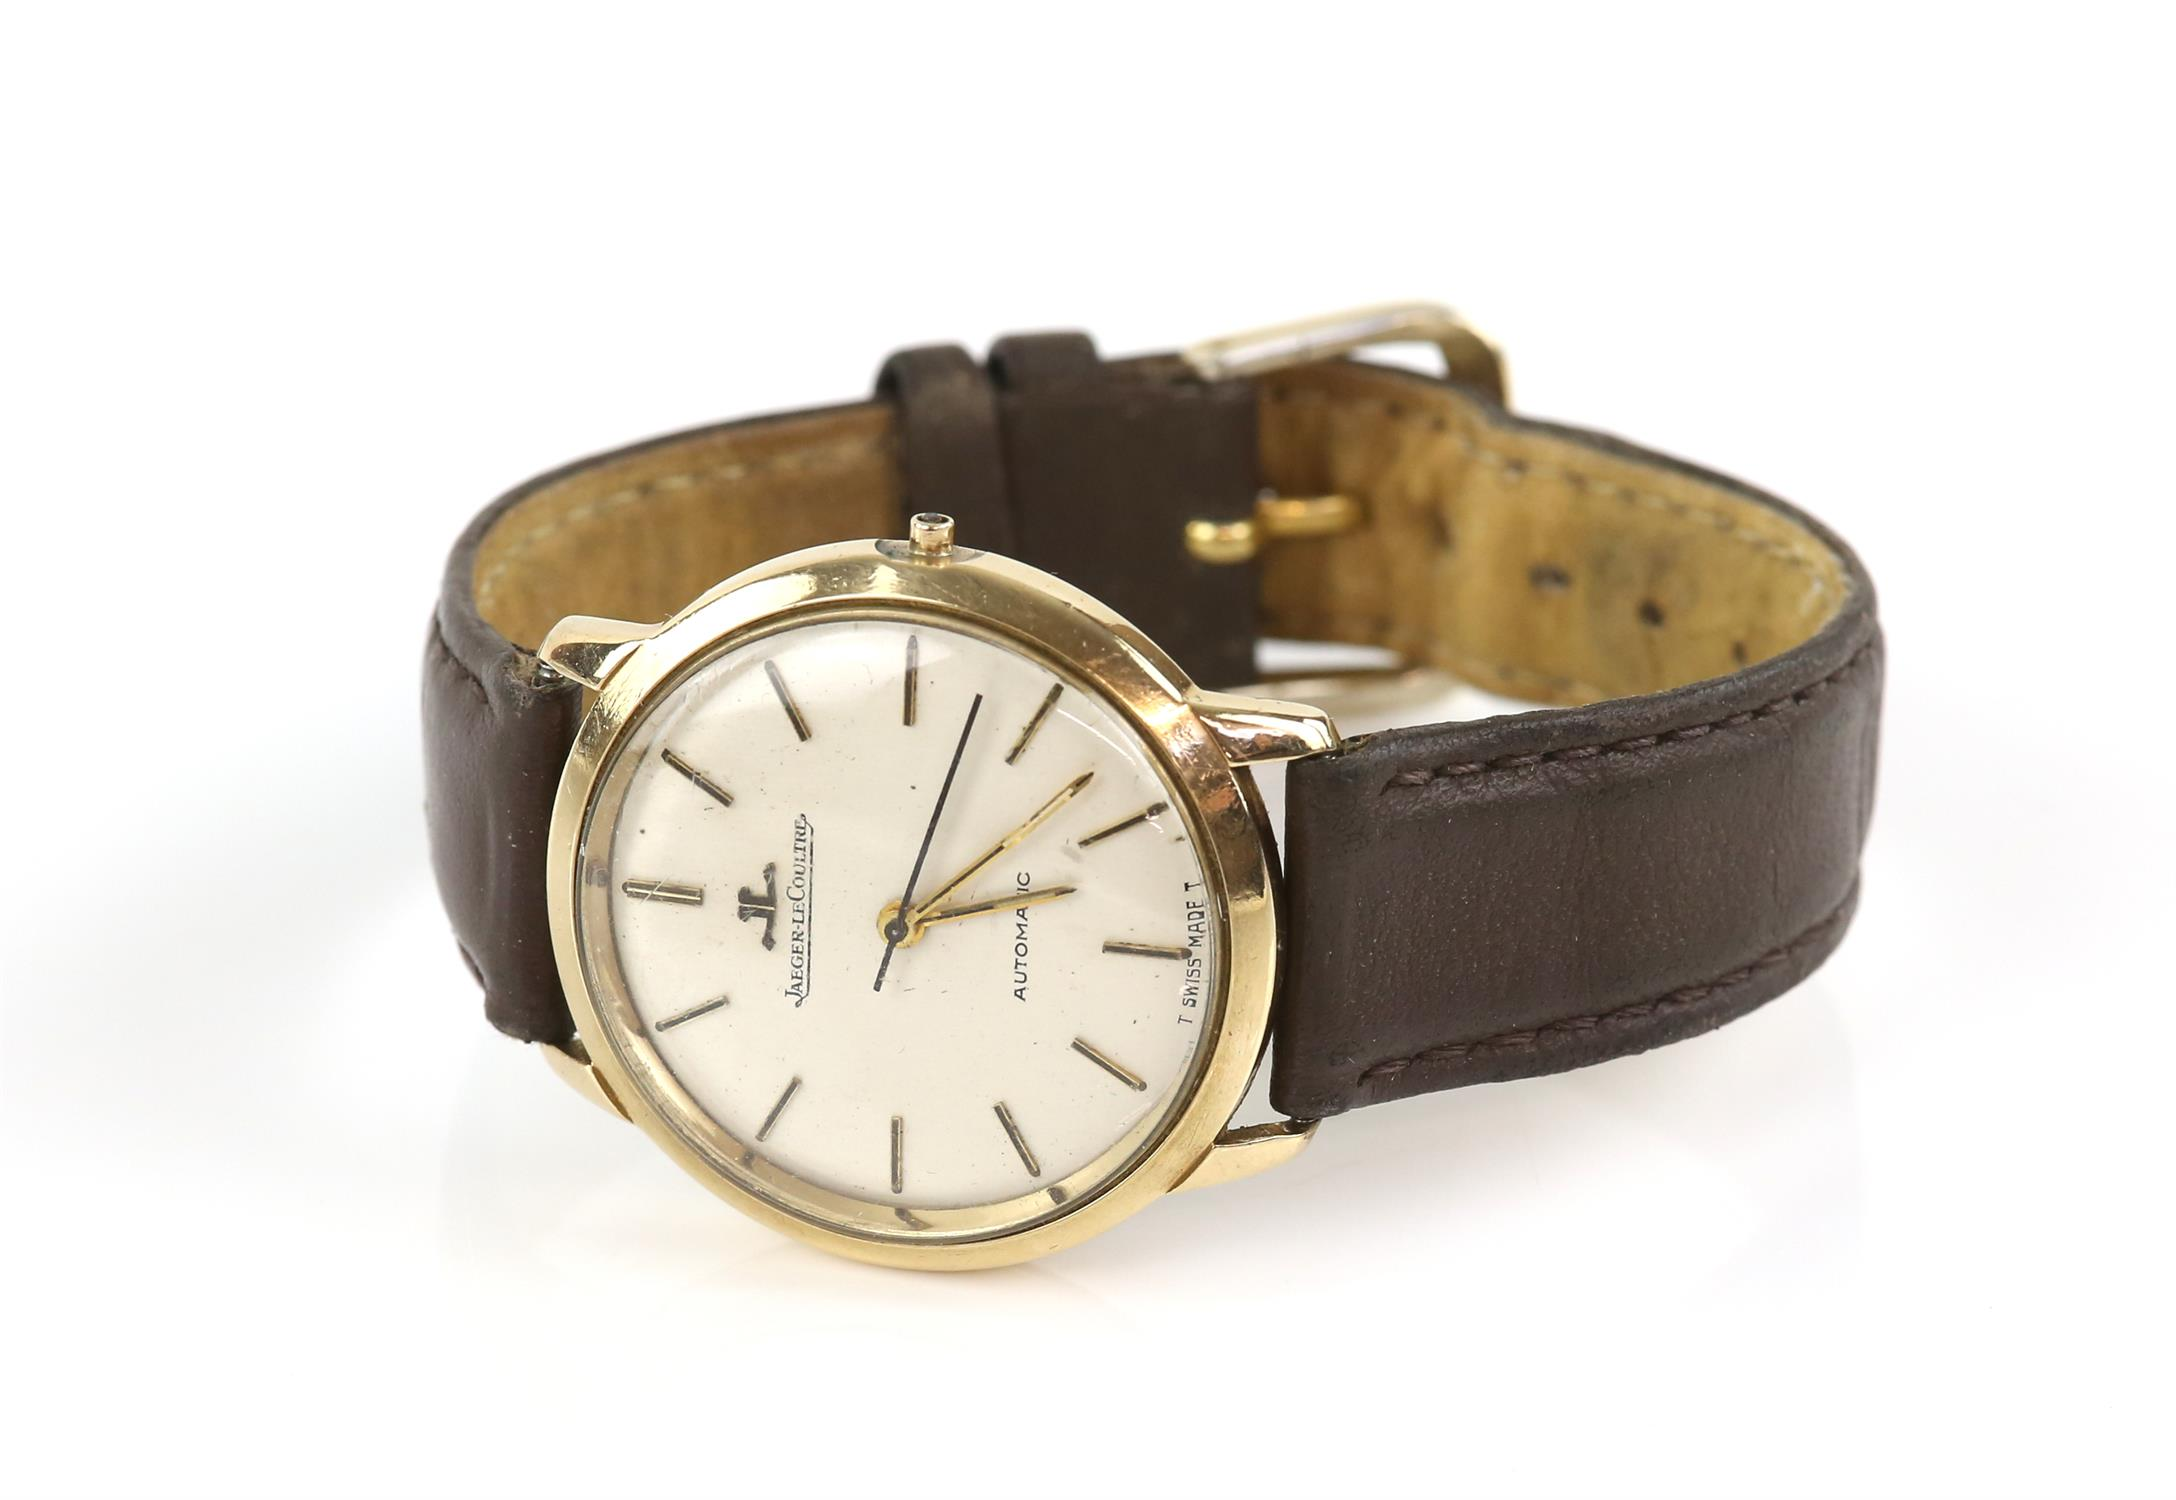 Jaeger Le Coultre, Reference 386 91 A Gentleman's gold cased wristwatch, signed silvered dial with - Image 2 of 4